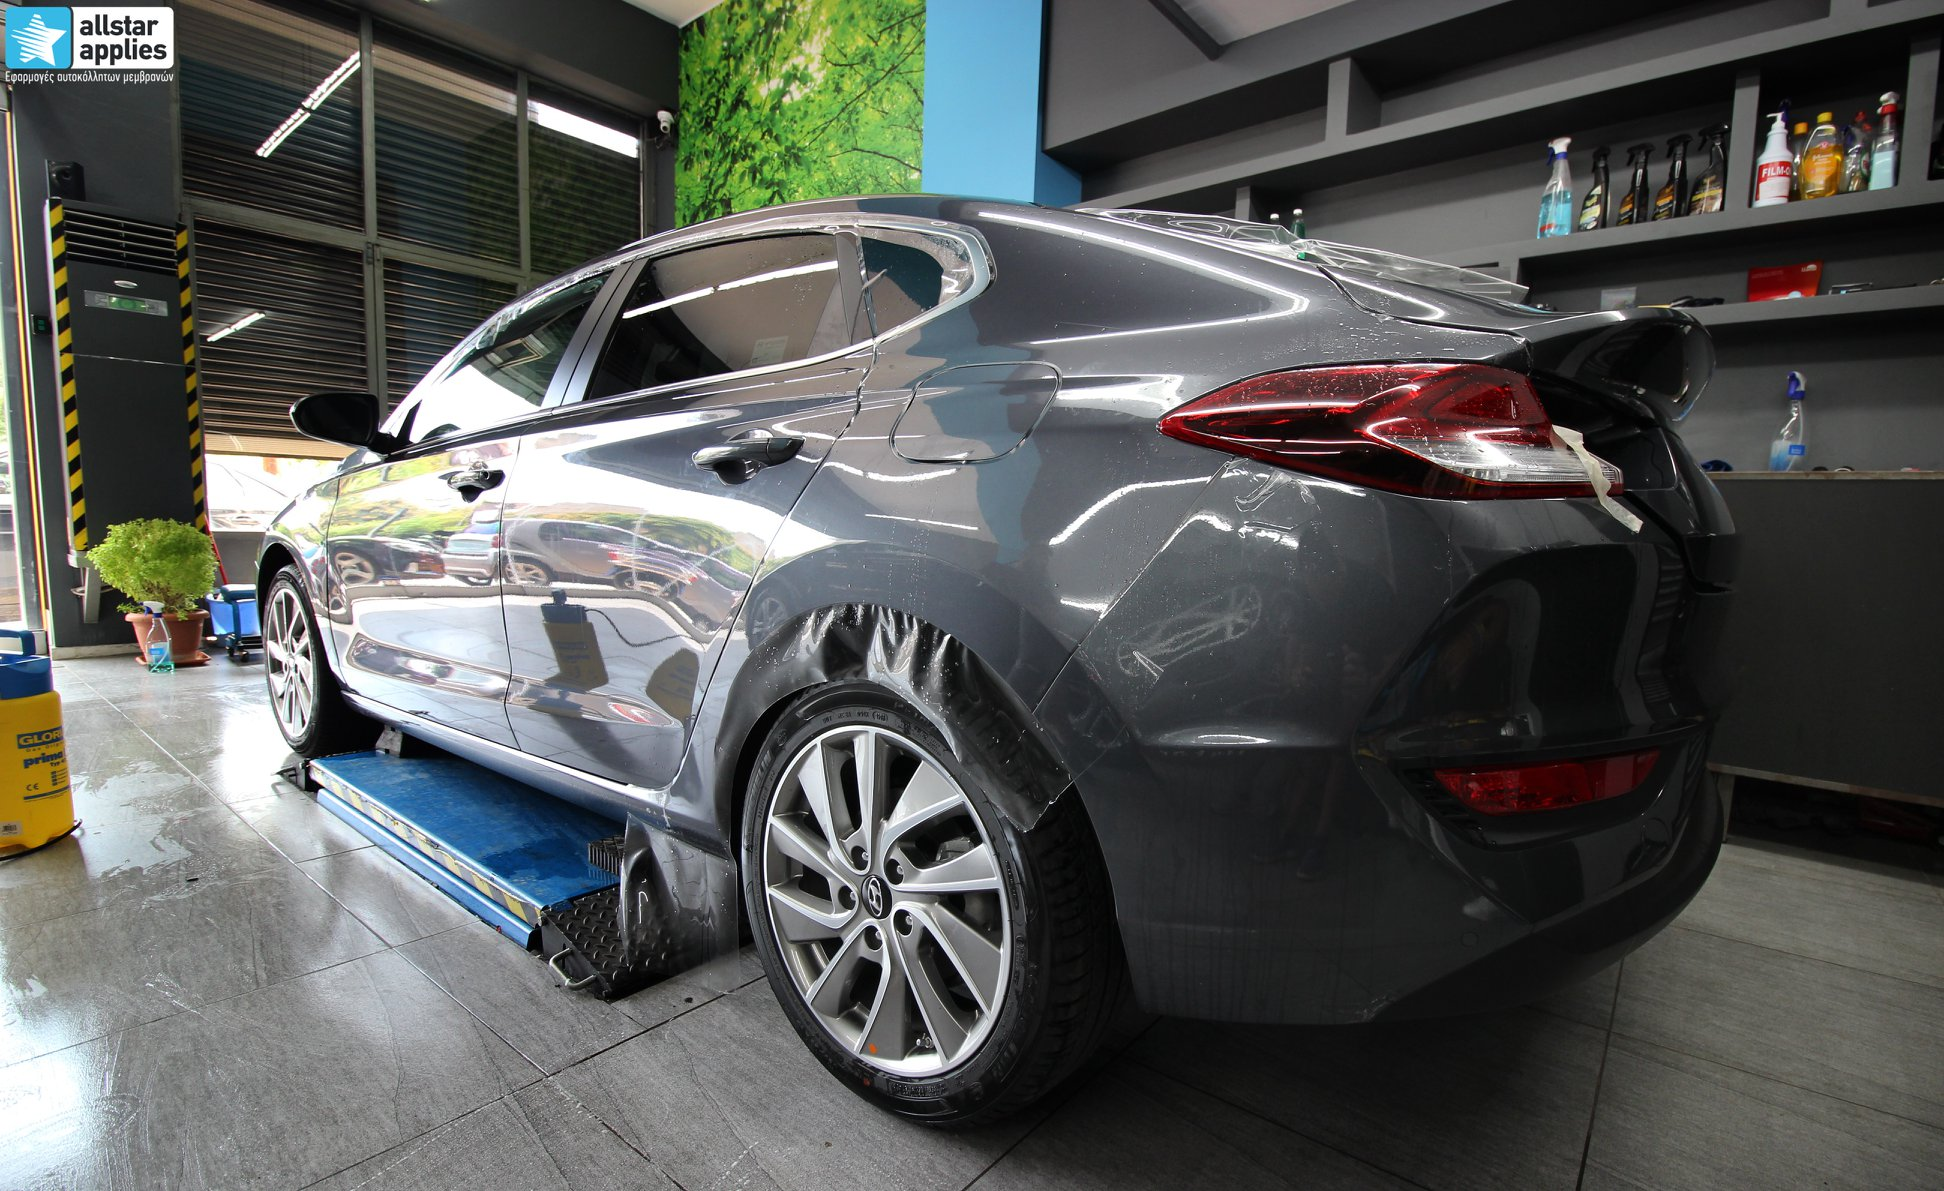 Hyundai i30 Fastback - Paint Protection Film (13)